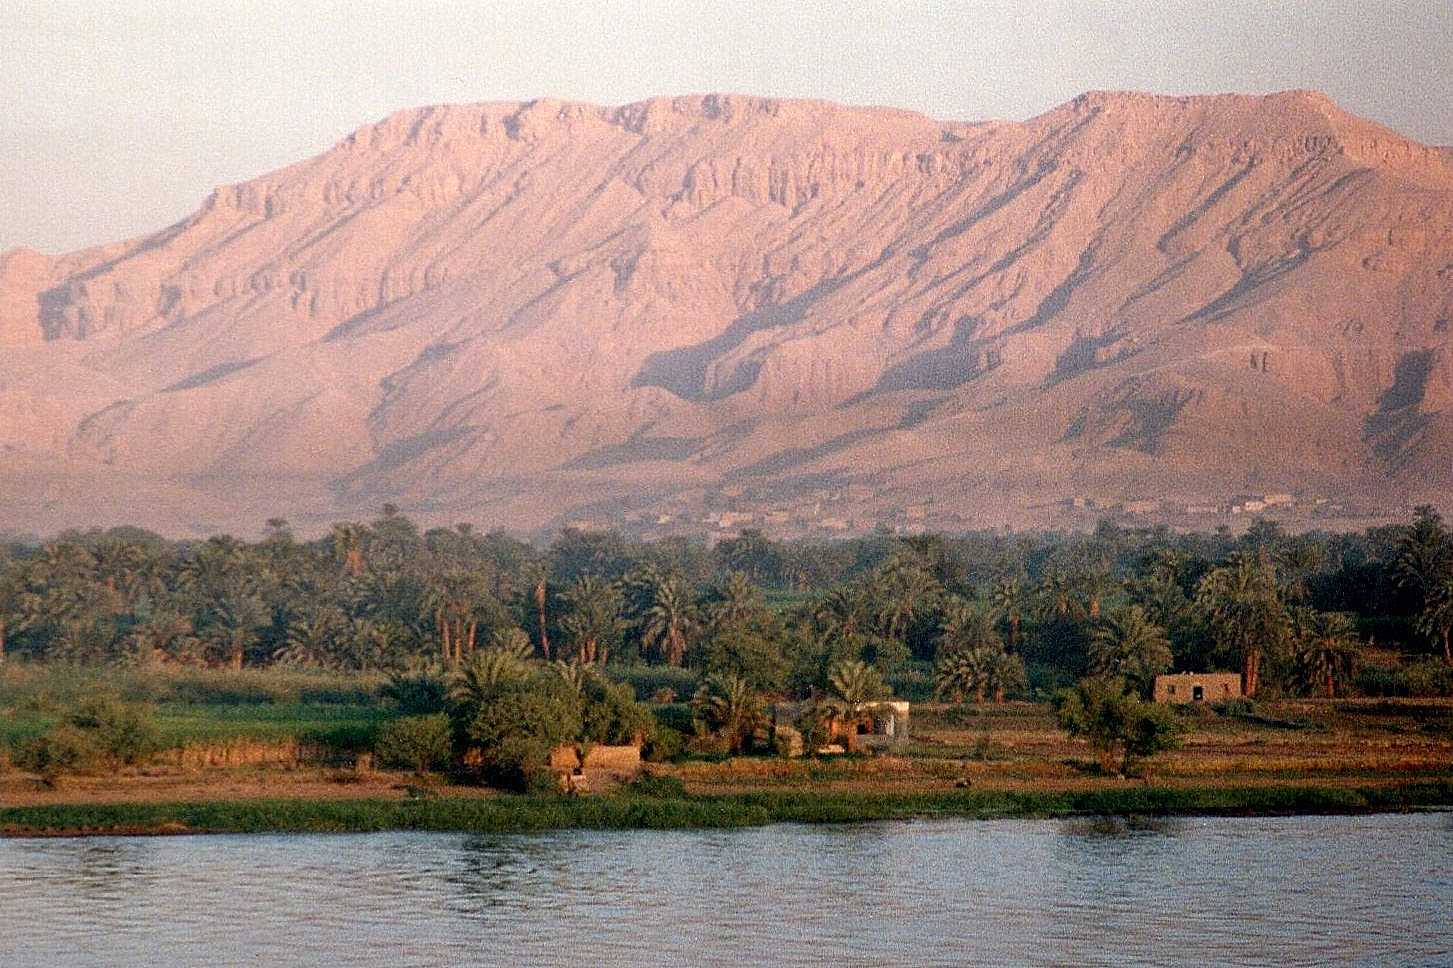 The rising sun turns the Theban mountains pink. As you can see, the West Bank was entirely agricultural. Luxor had yet to jump the river